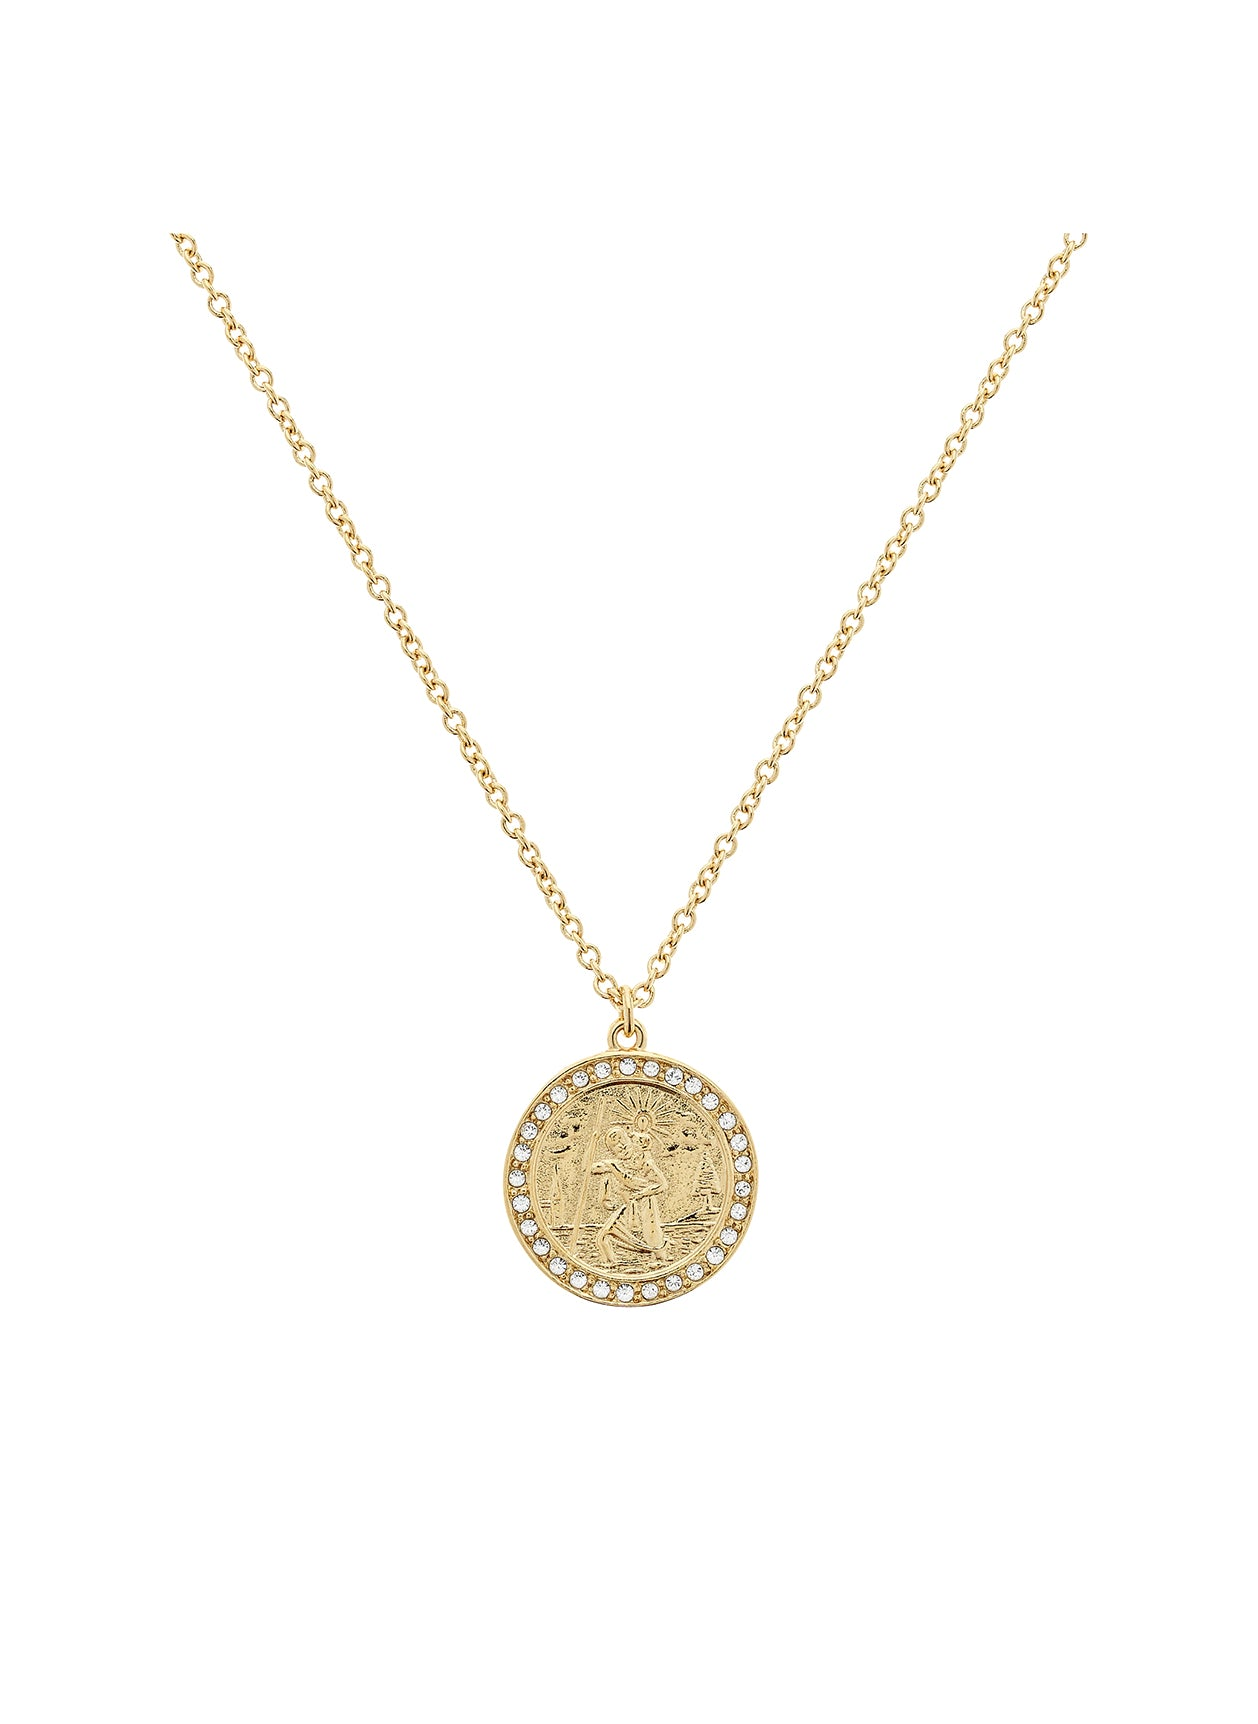 Gold Swarovski Crystal St Christopher Necklace